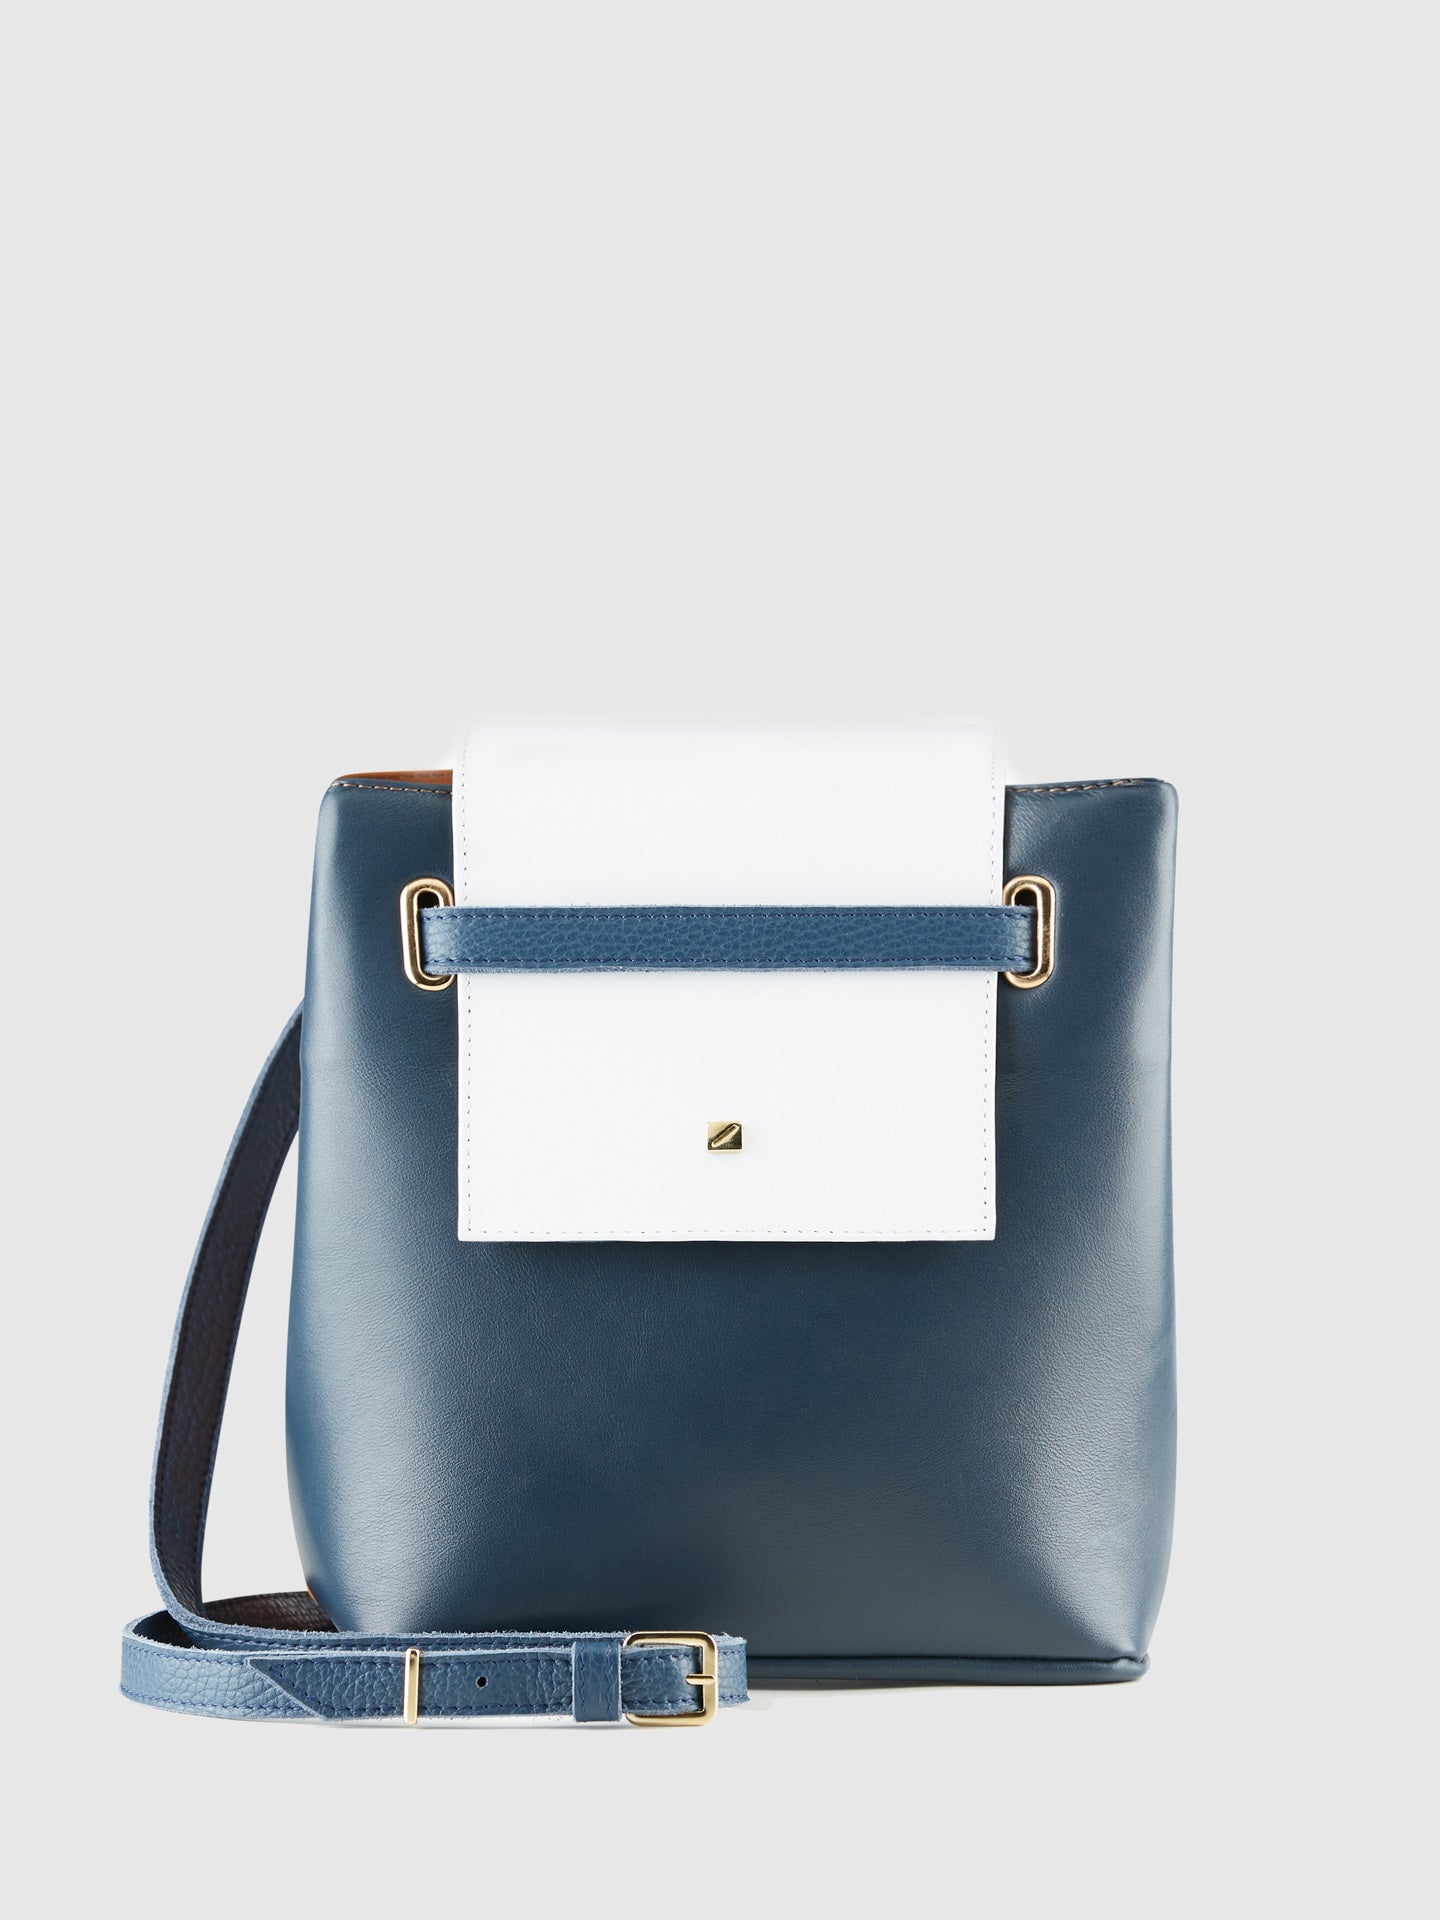 Maria Maleta Blue and Camel Crossbody Bag